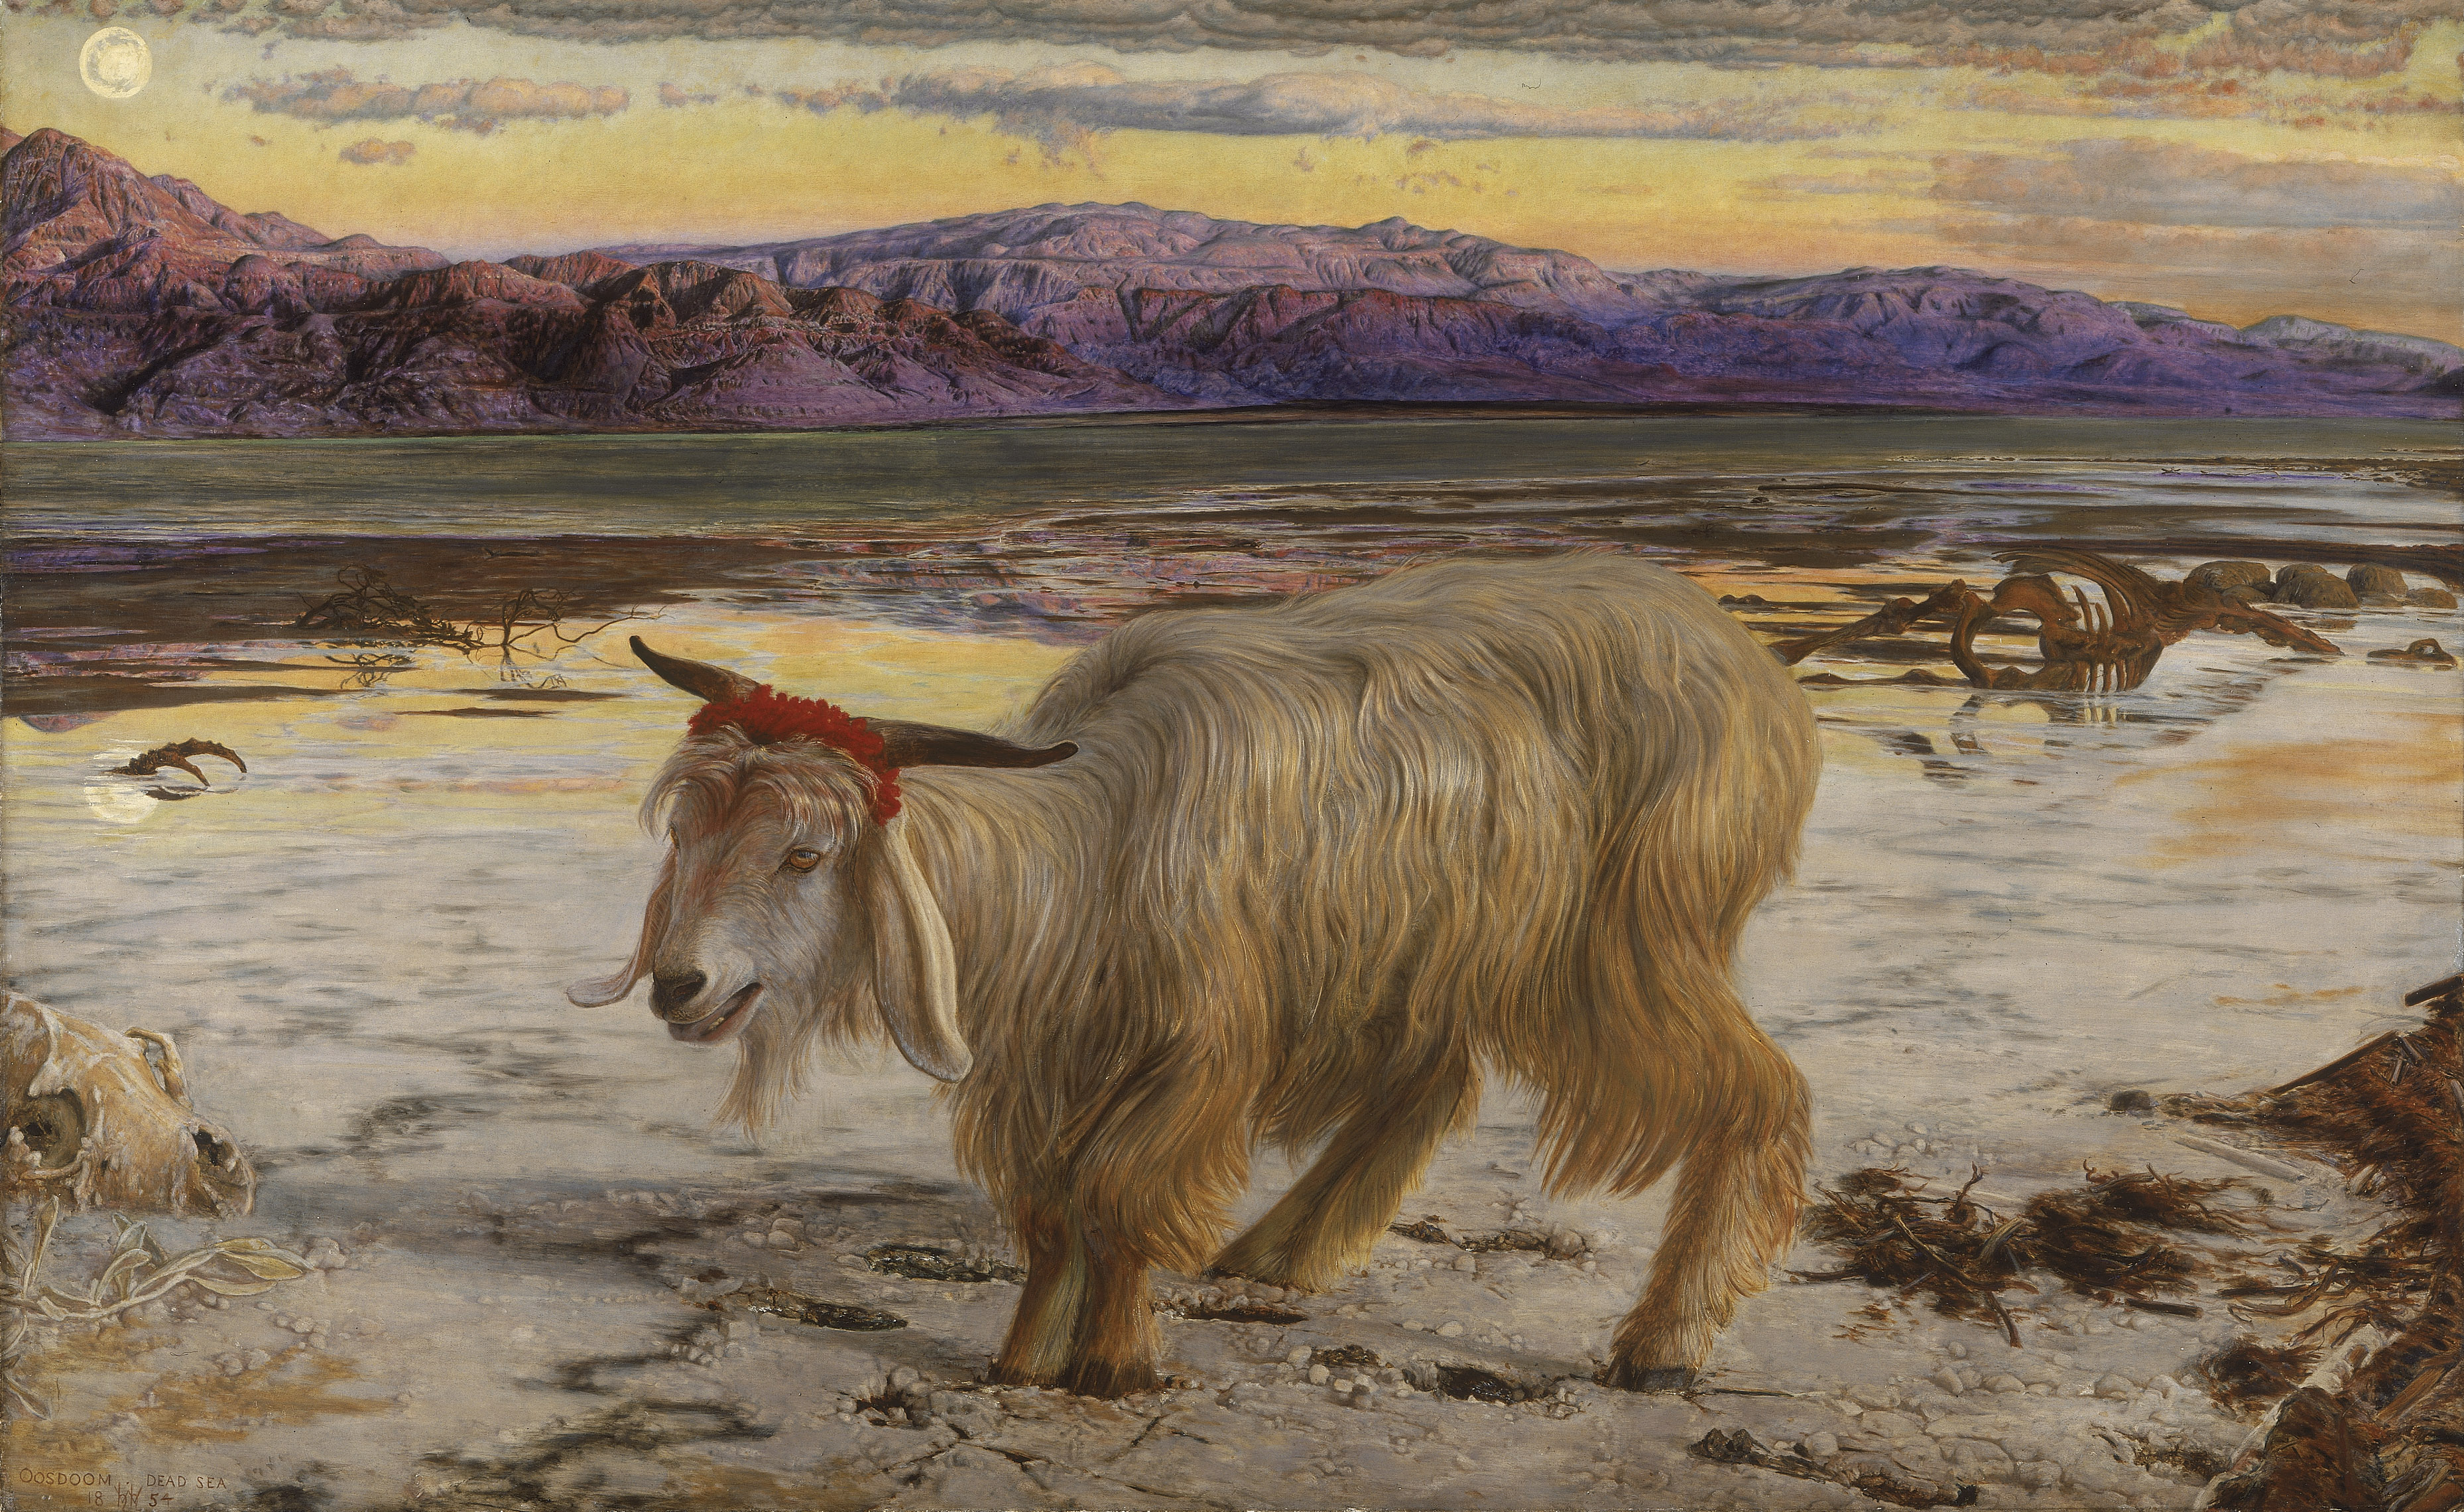 William_Holman_Hunt_-_The_Scapegoat-1854